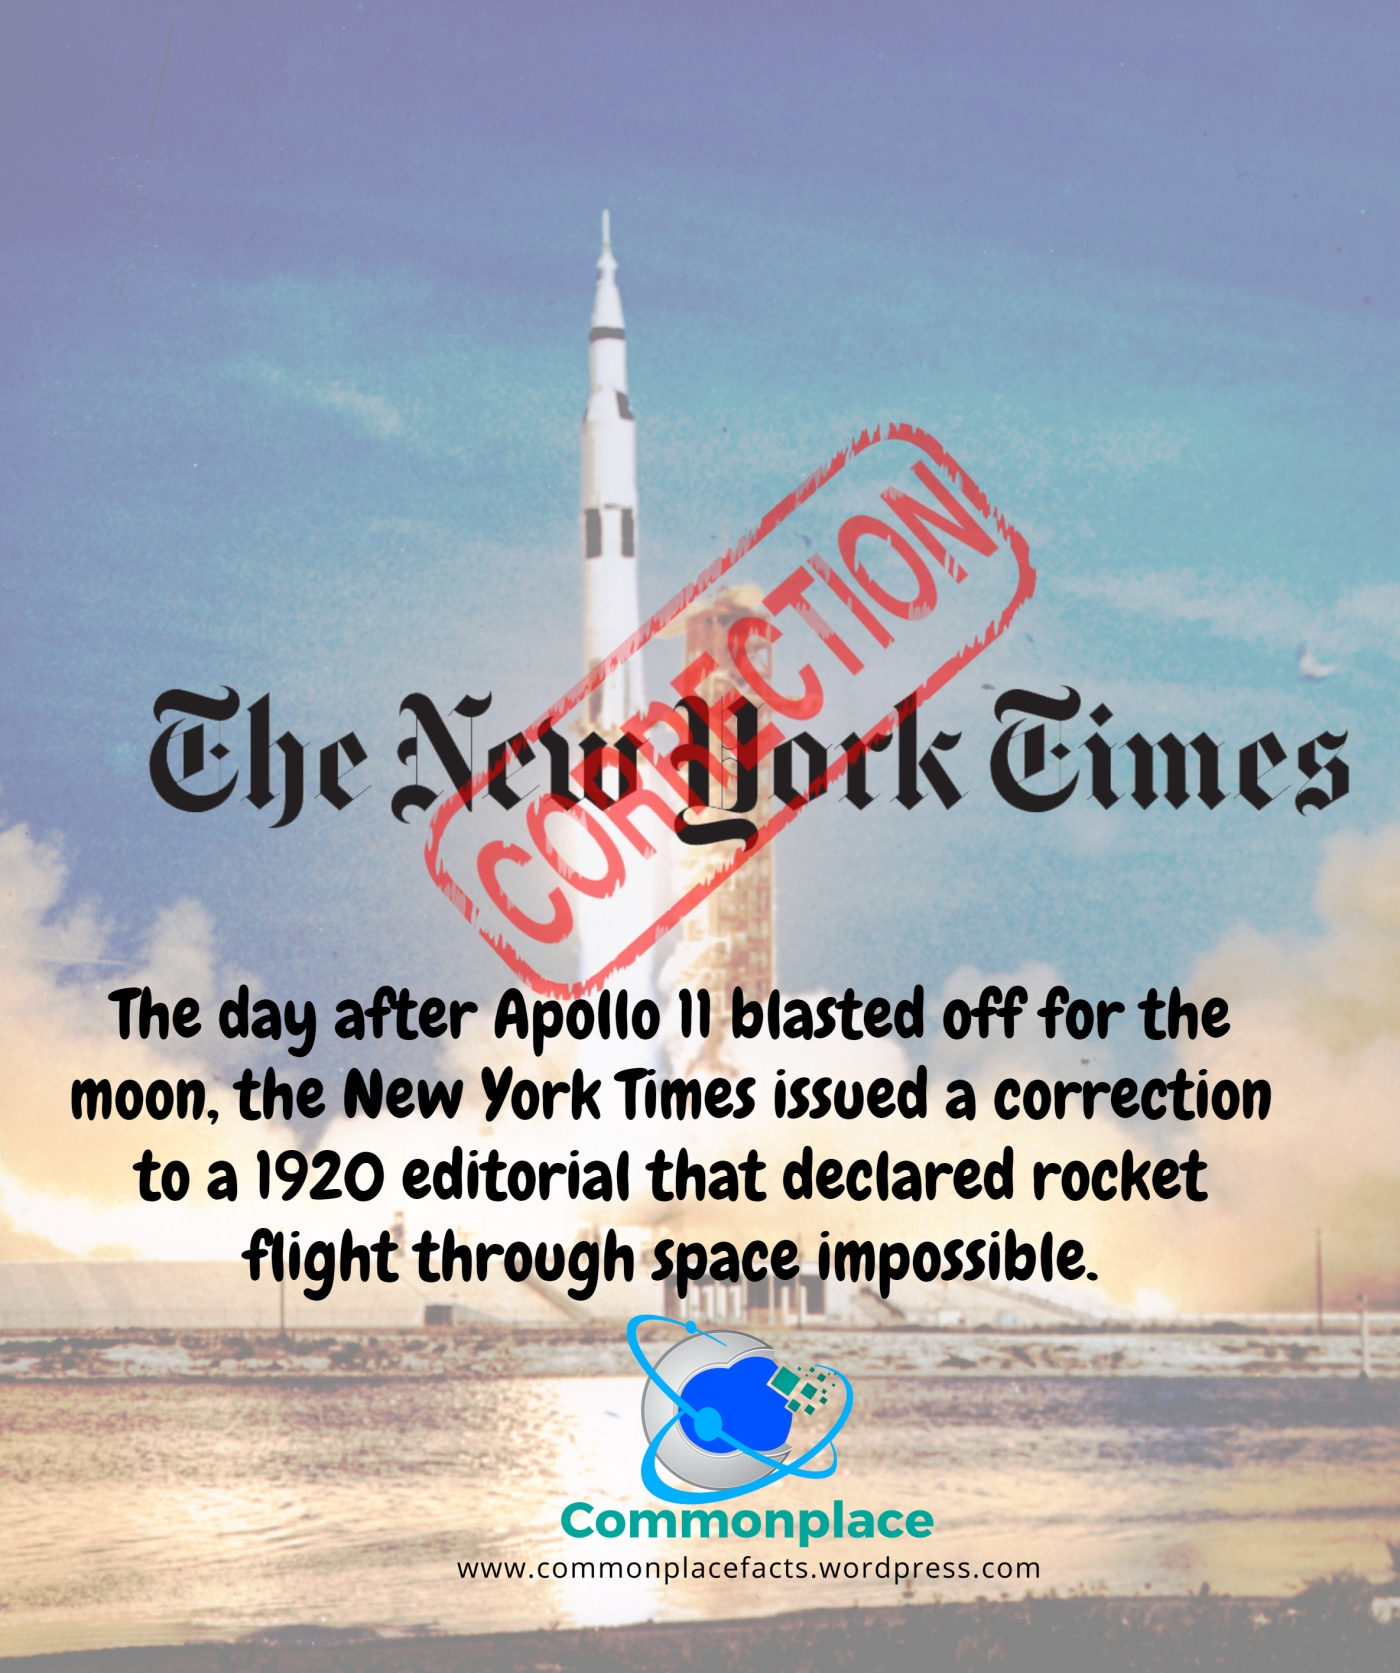 A Correction 49 Years in the Making – Commonplace Fun Facts